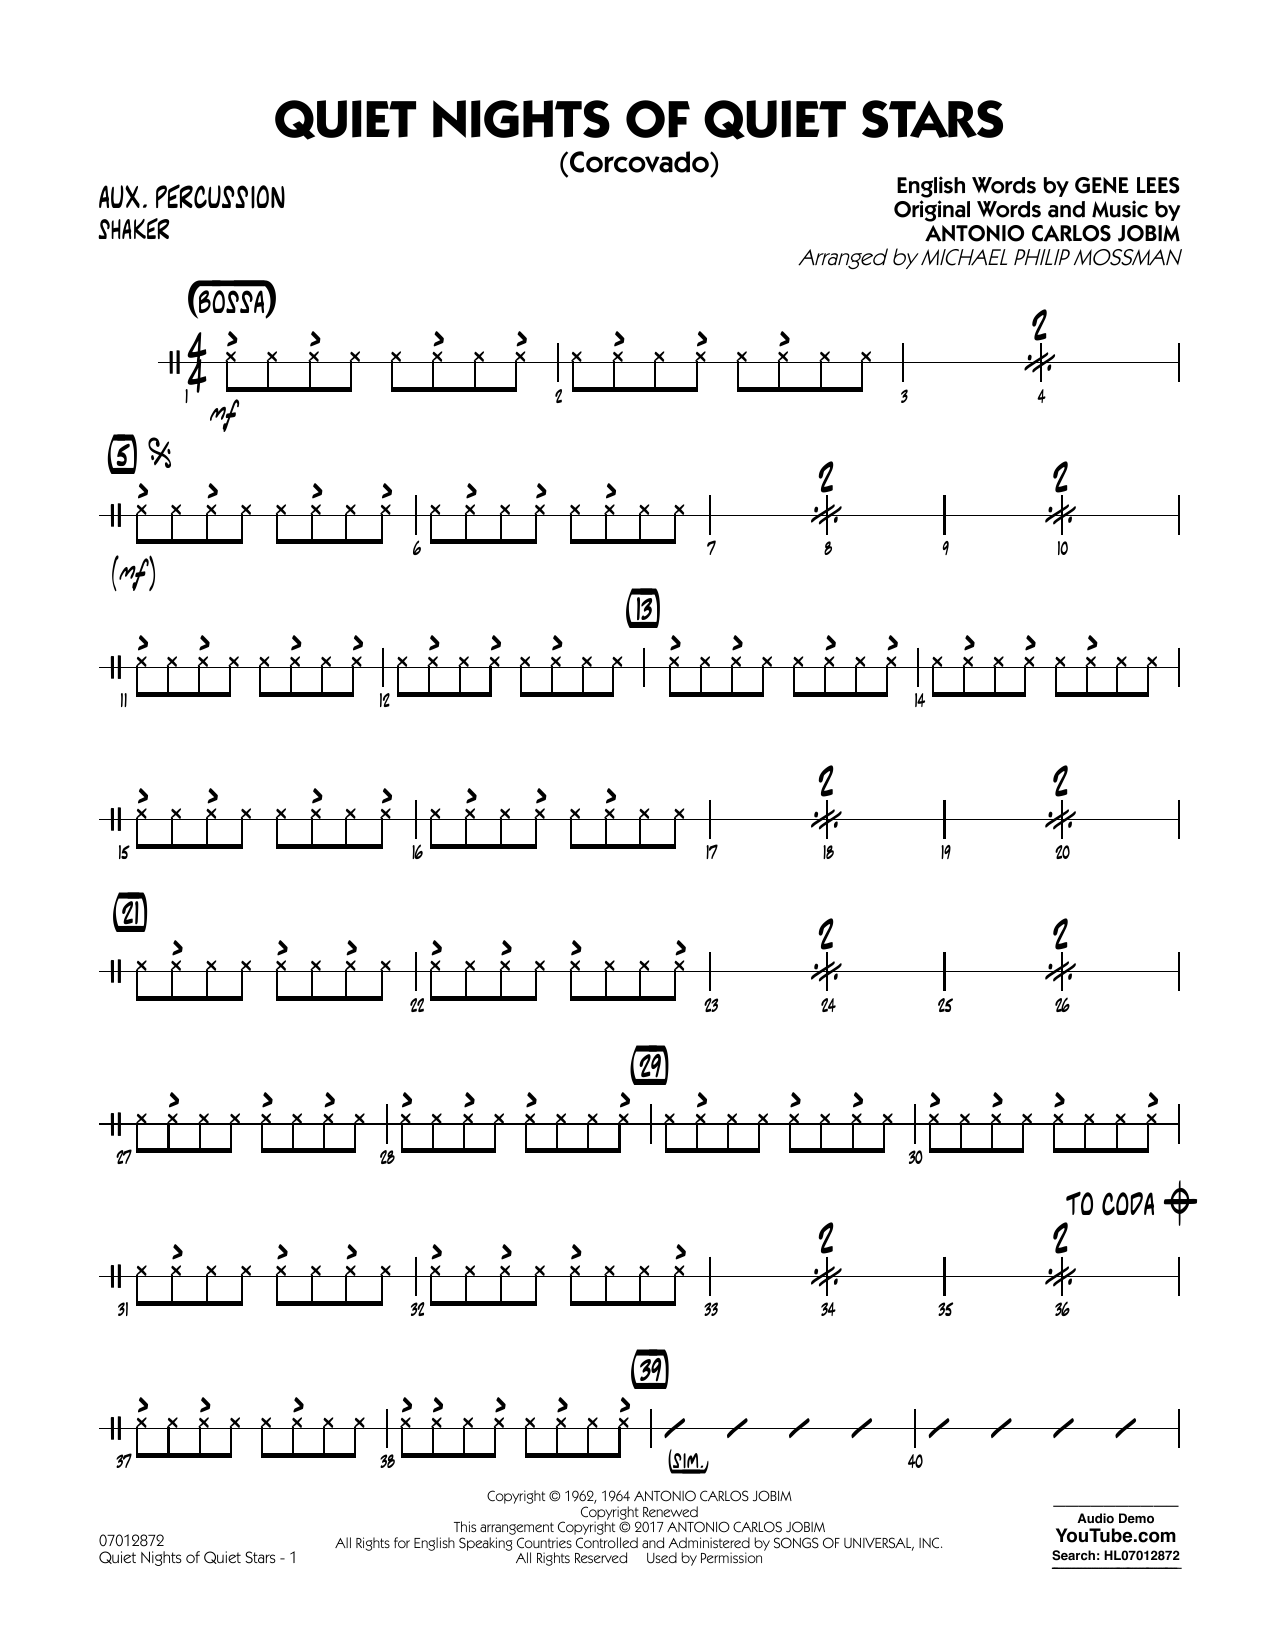 Quiet Nights of Quiet Stars (Corcovado) - Aux. Percussion Sheet Music